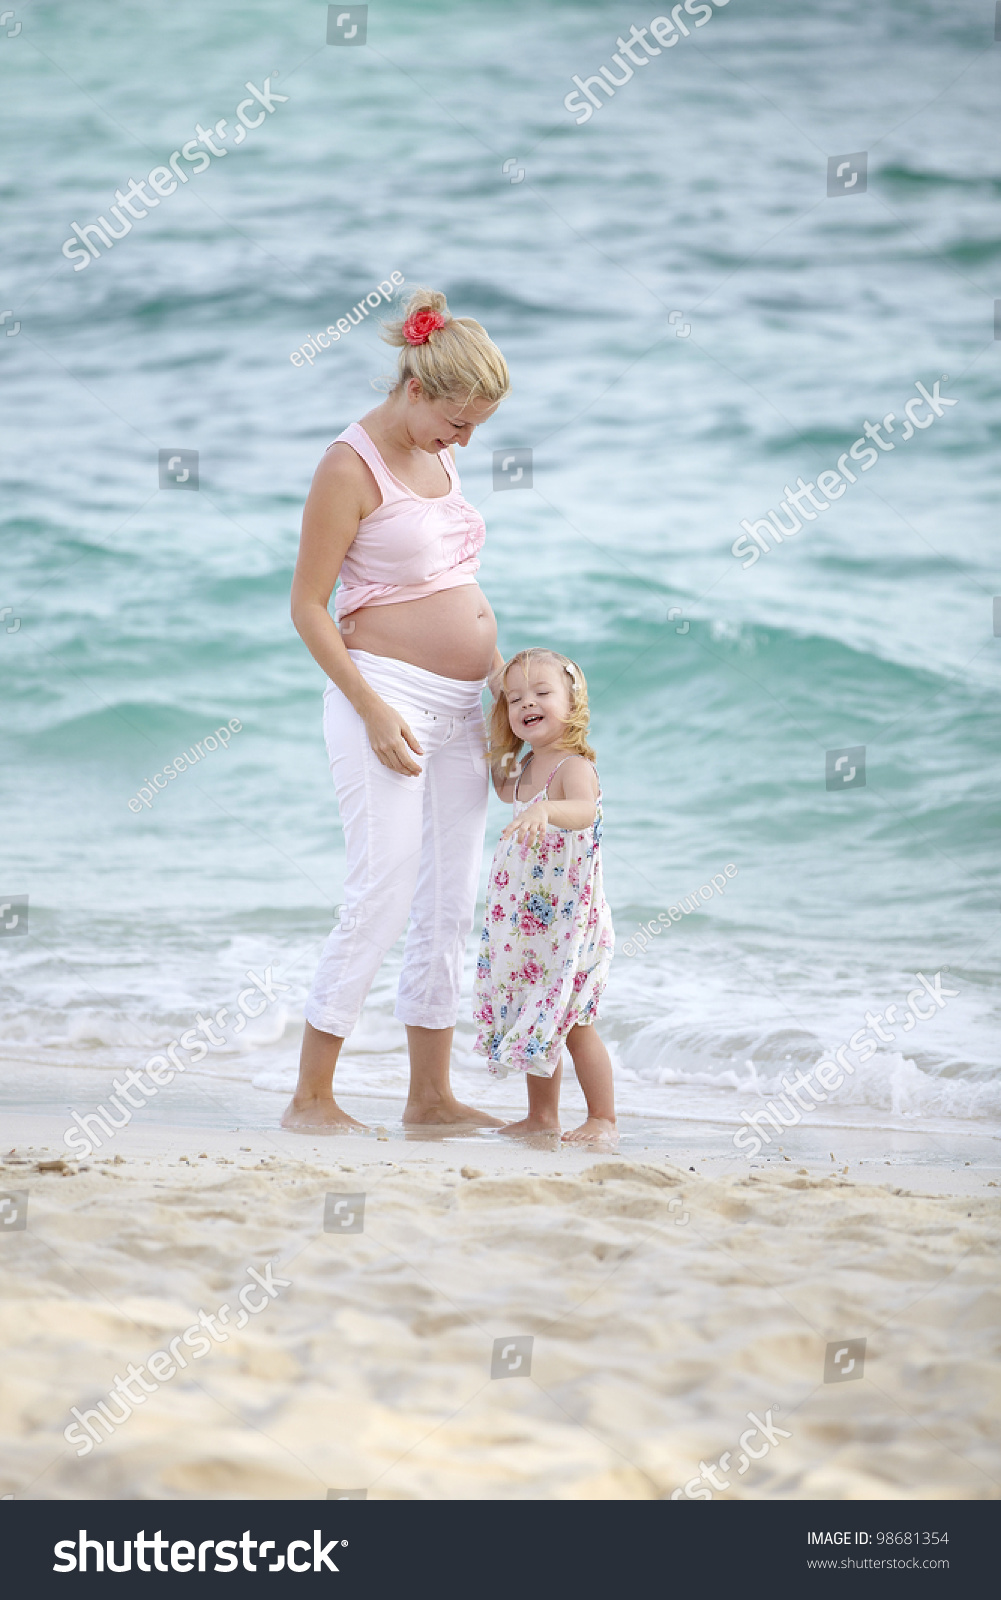 Topless Free Nude Pregnants Pictures